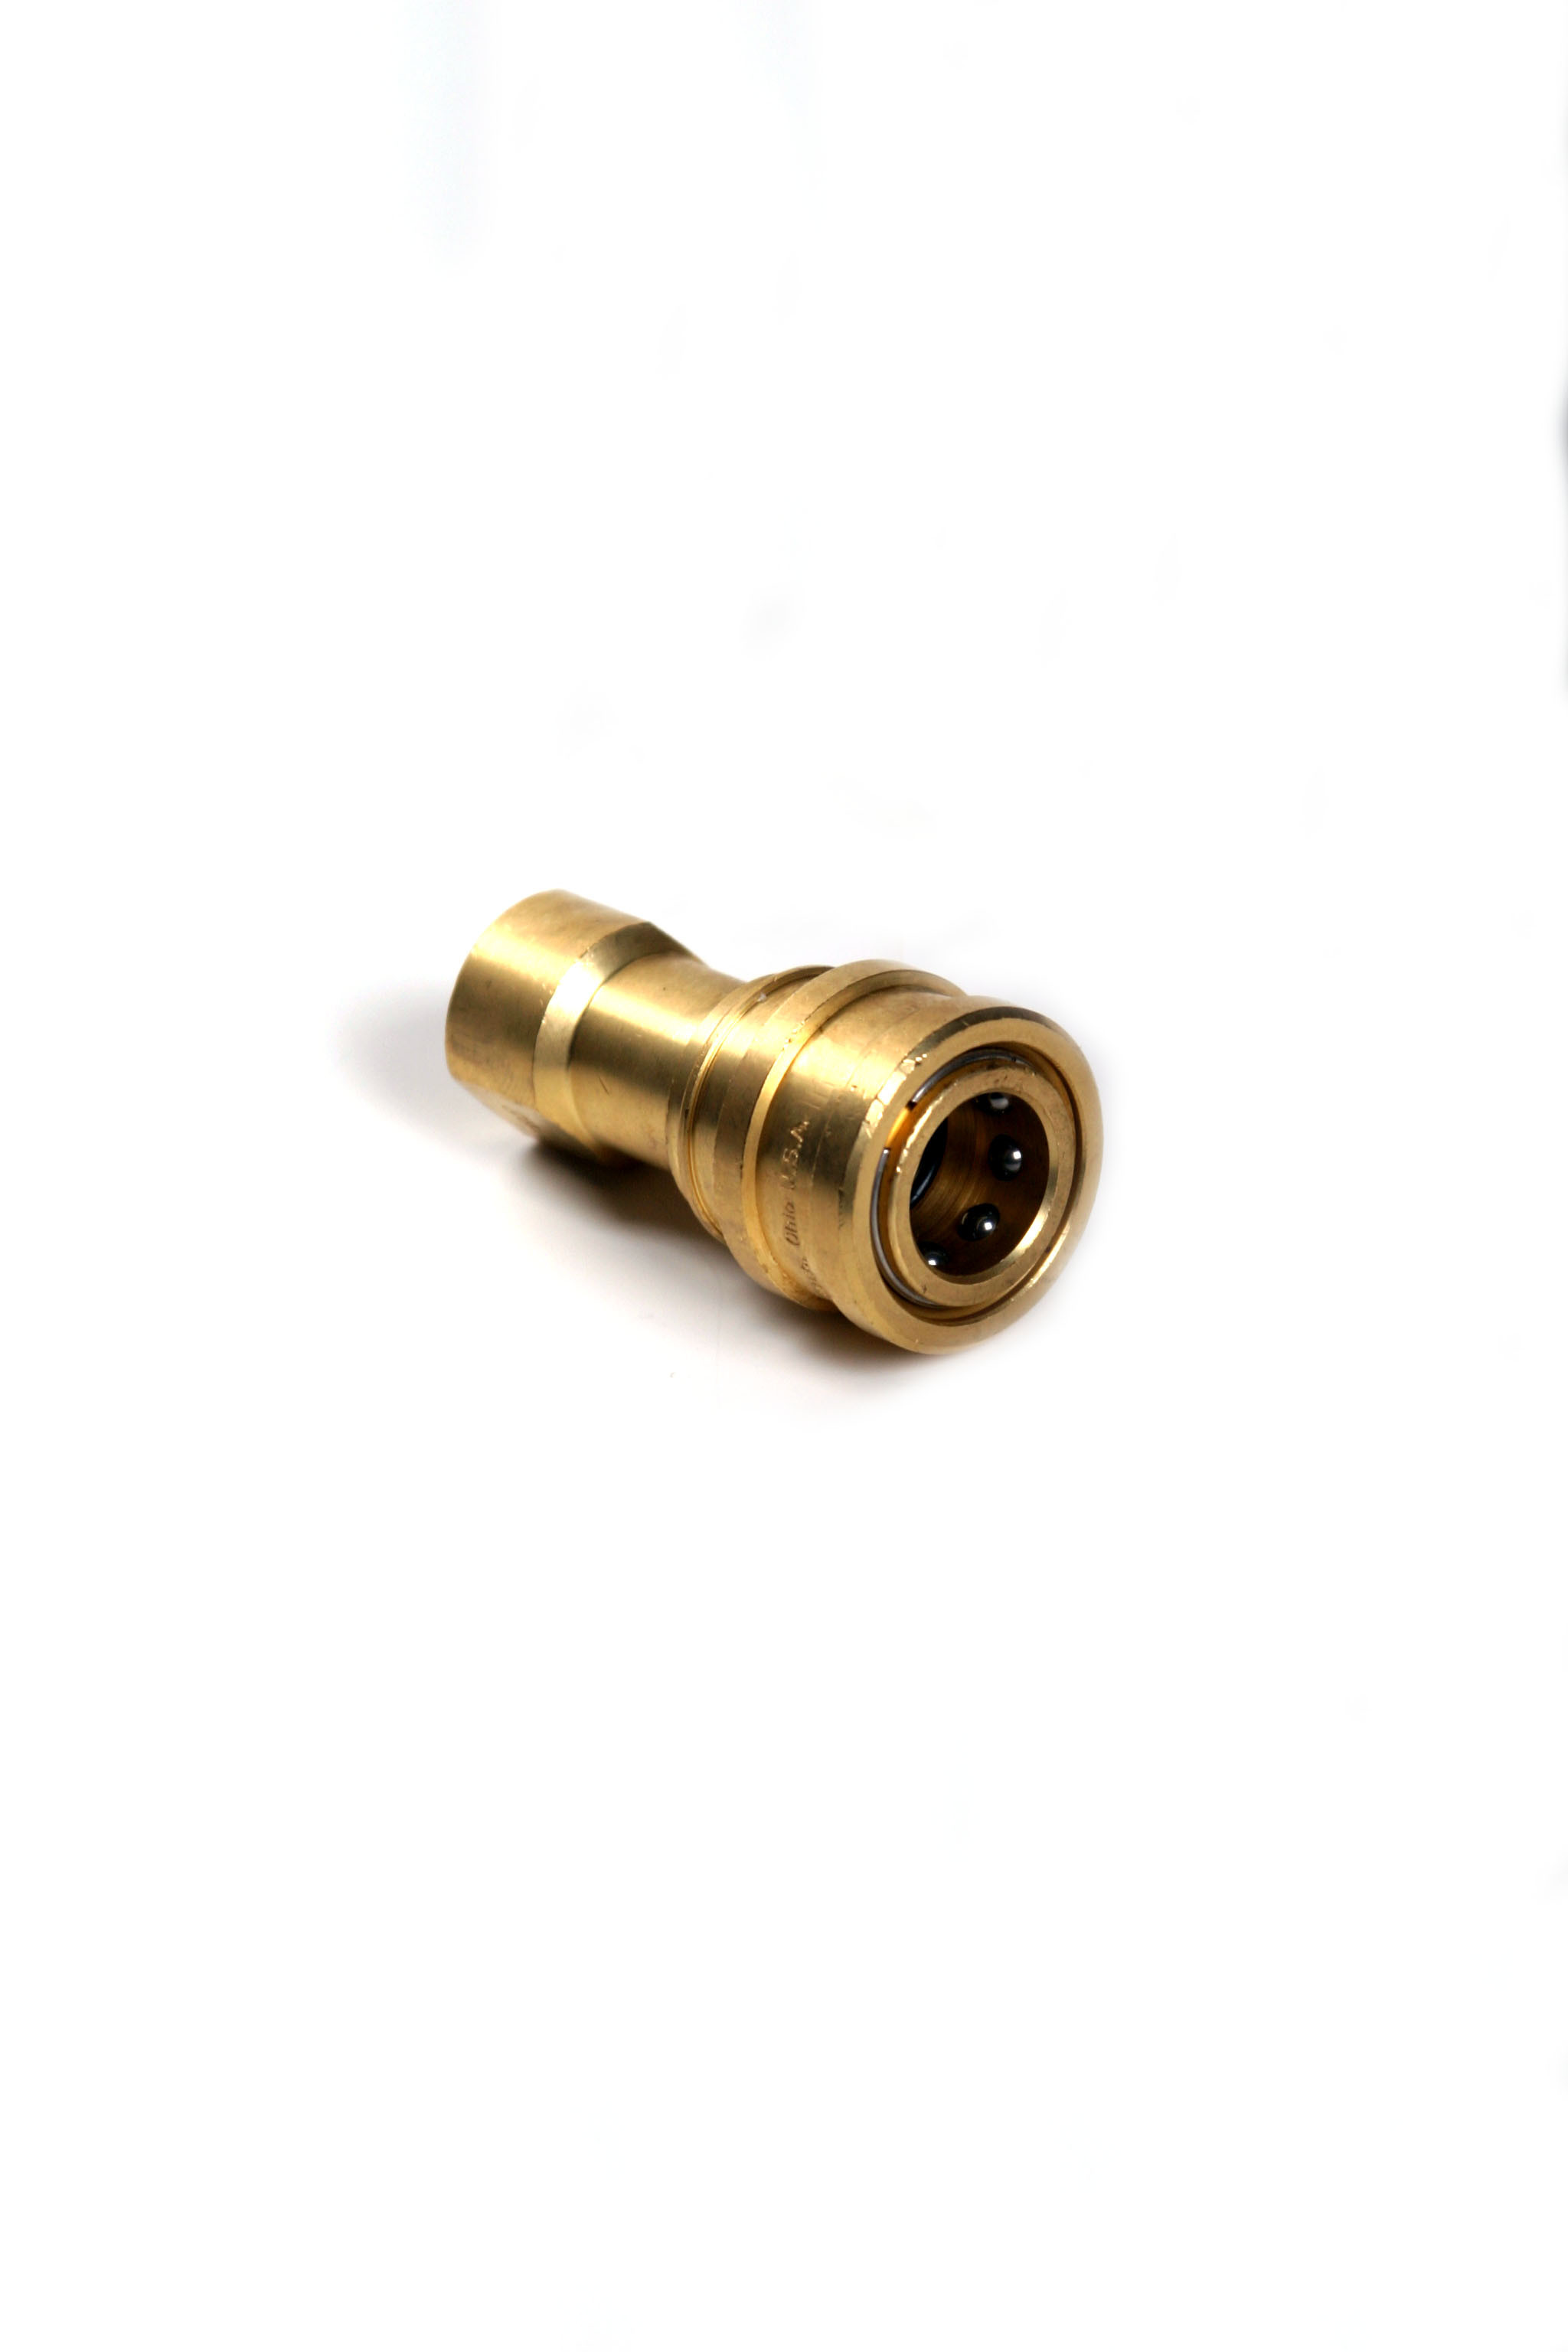 1/8'' Female Quick Connect Brass | 052-049